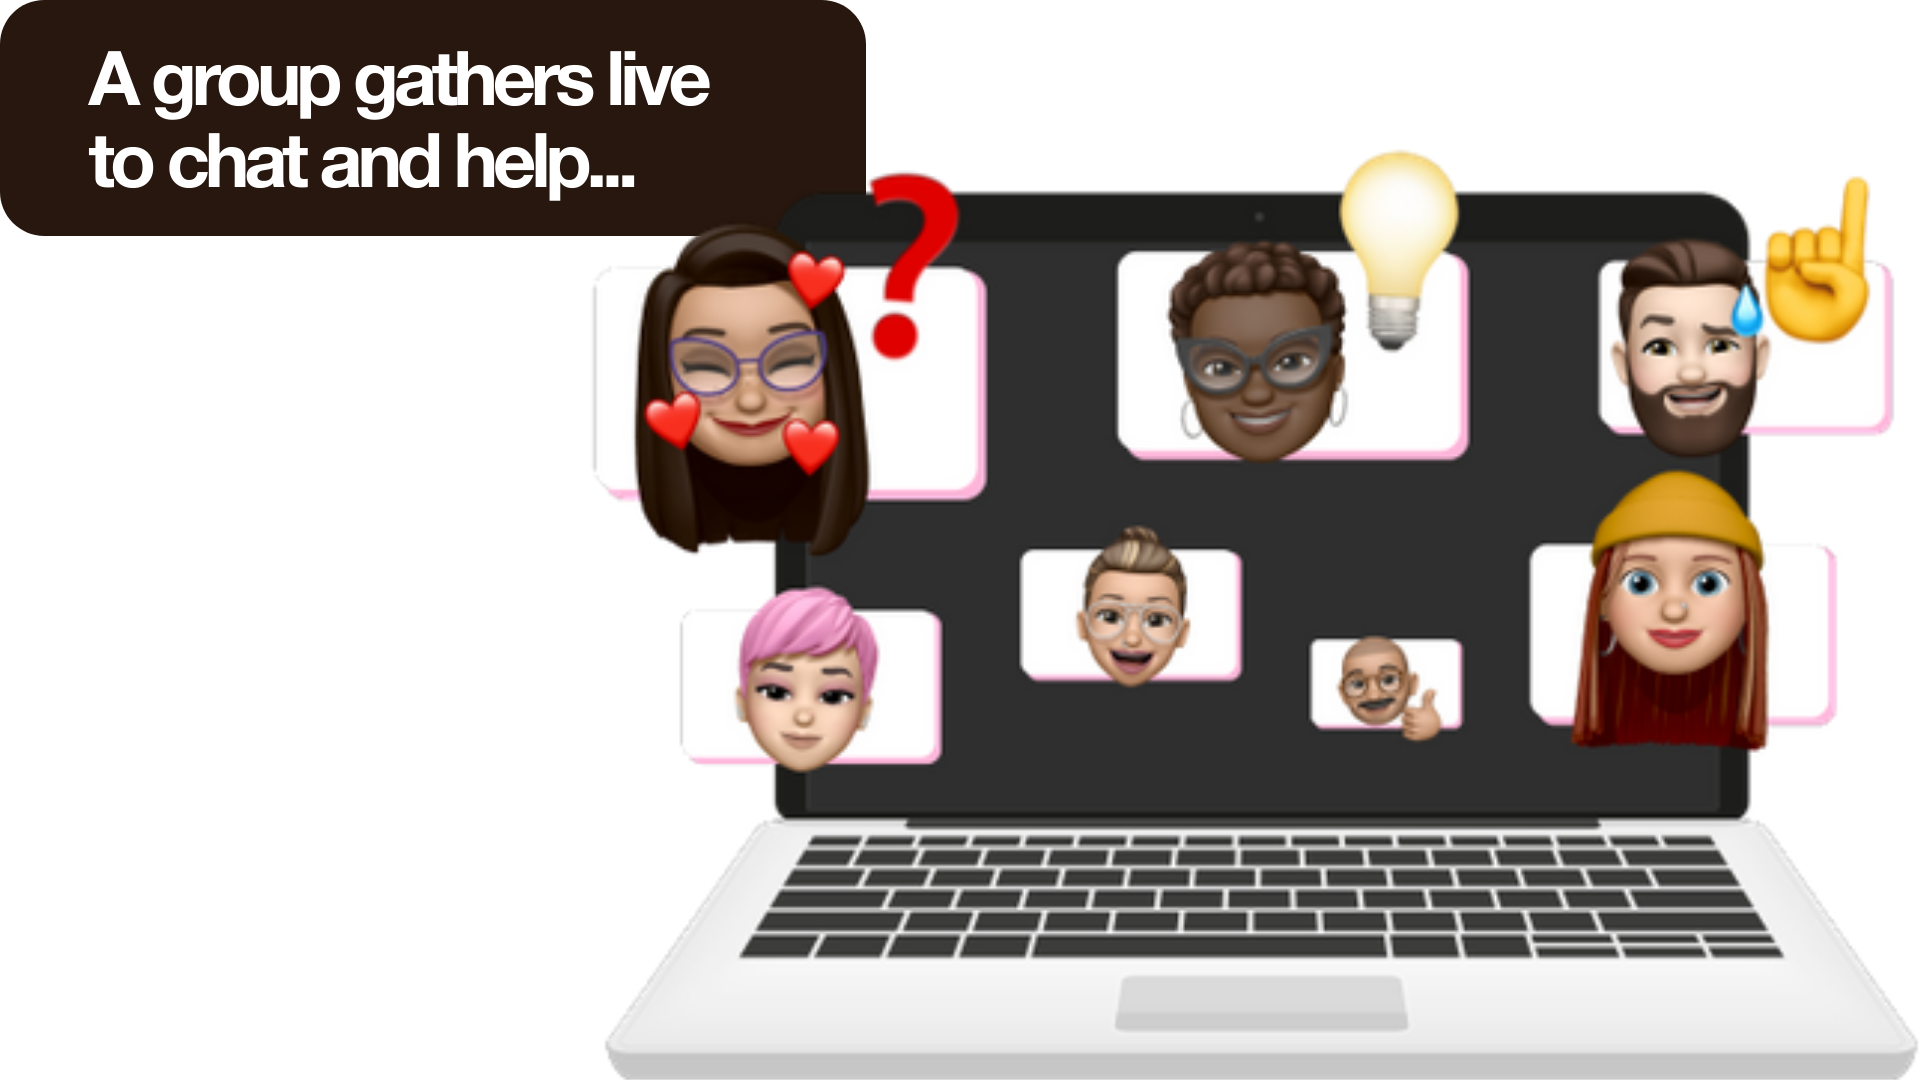 A group of people gathers online to help the person who asked a question about dating post-lockdown. They have a video chat.